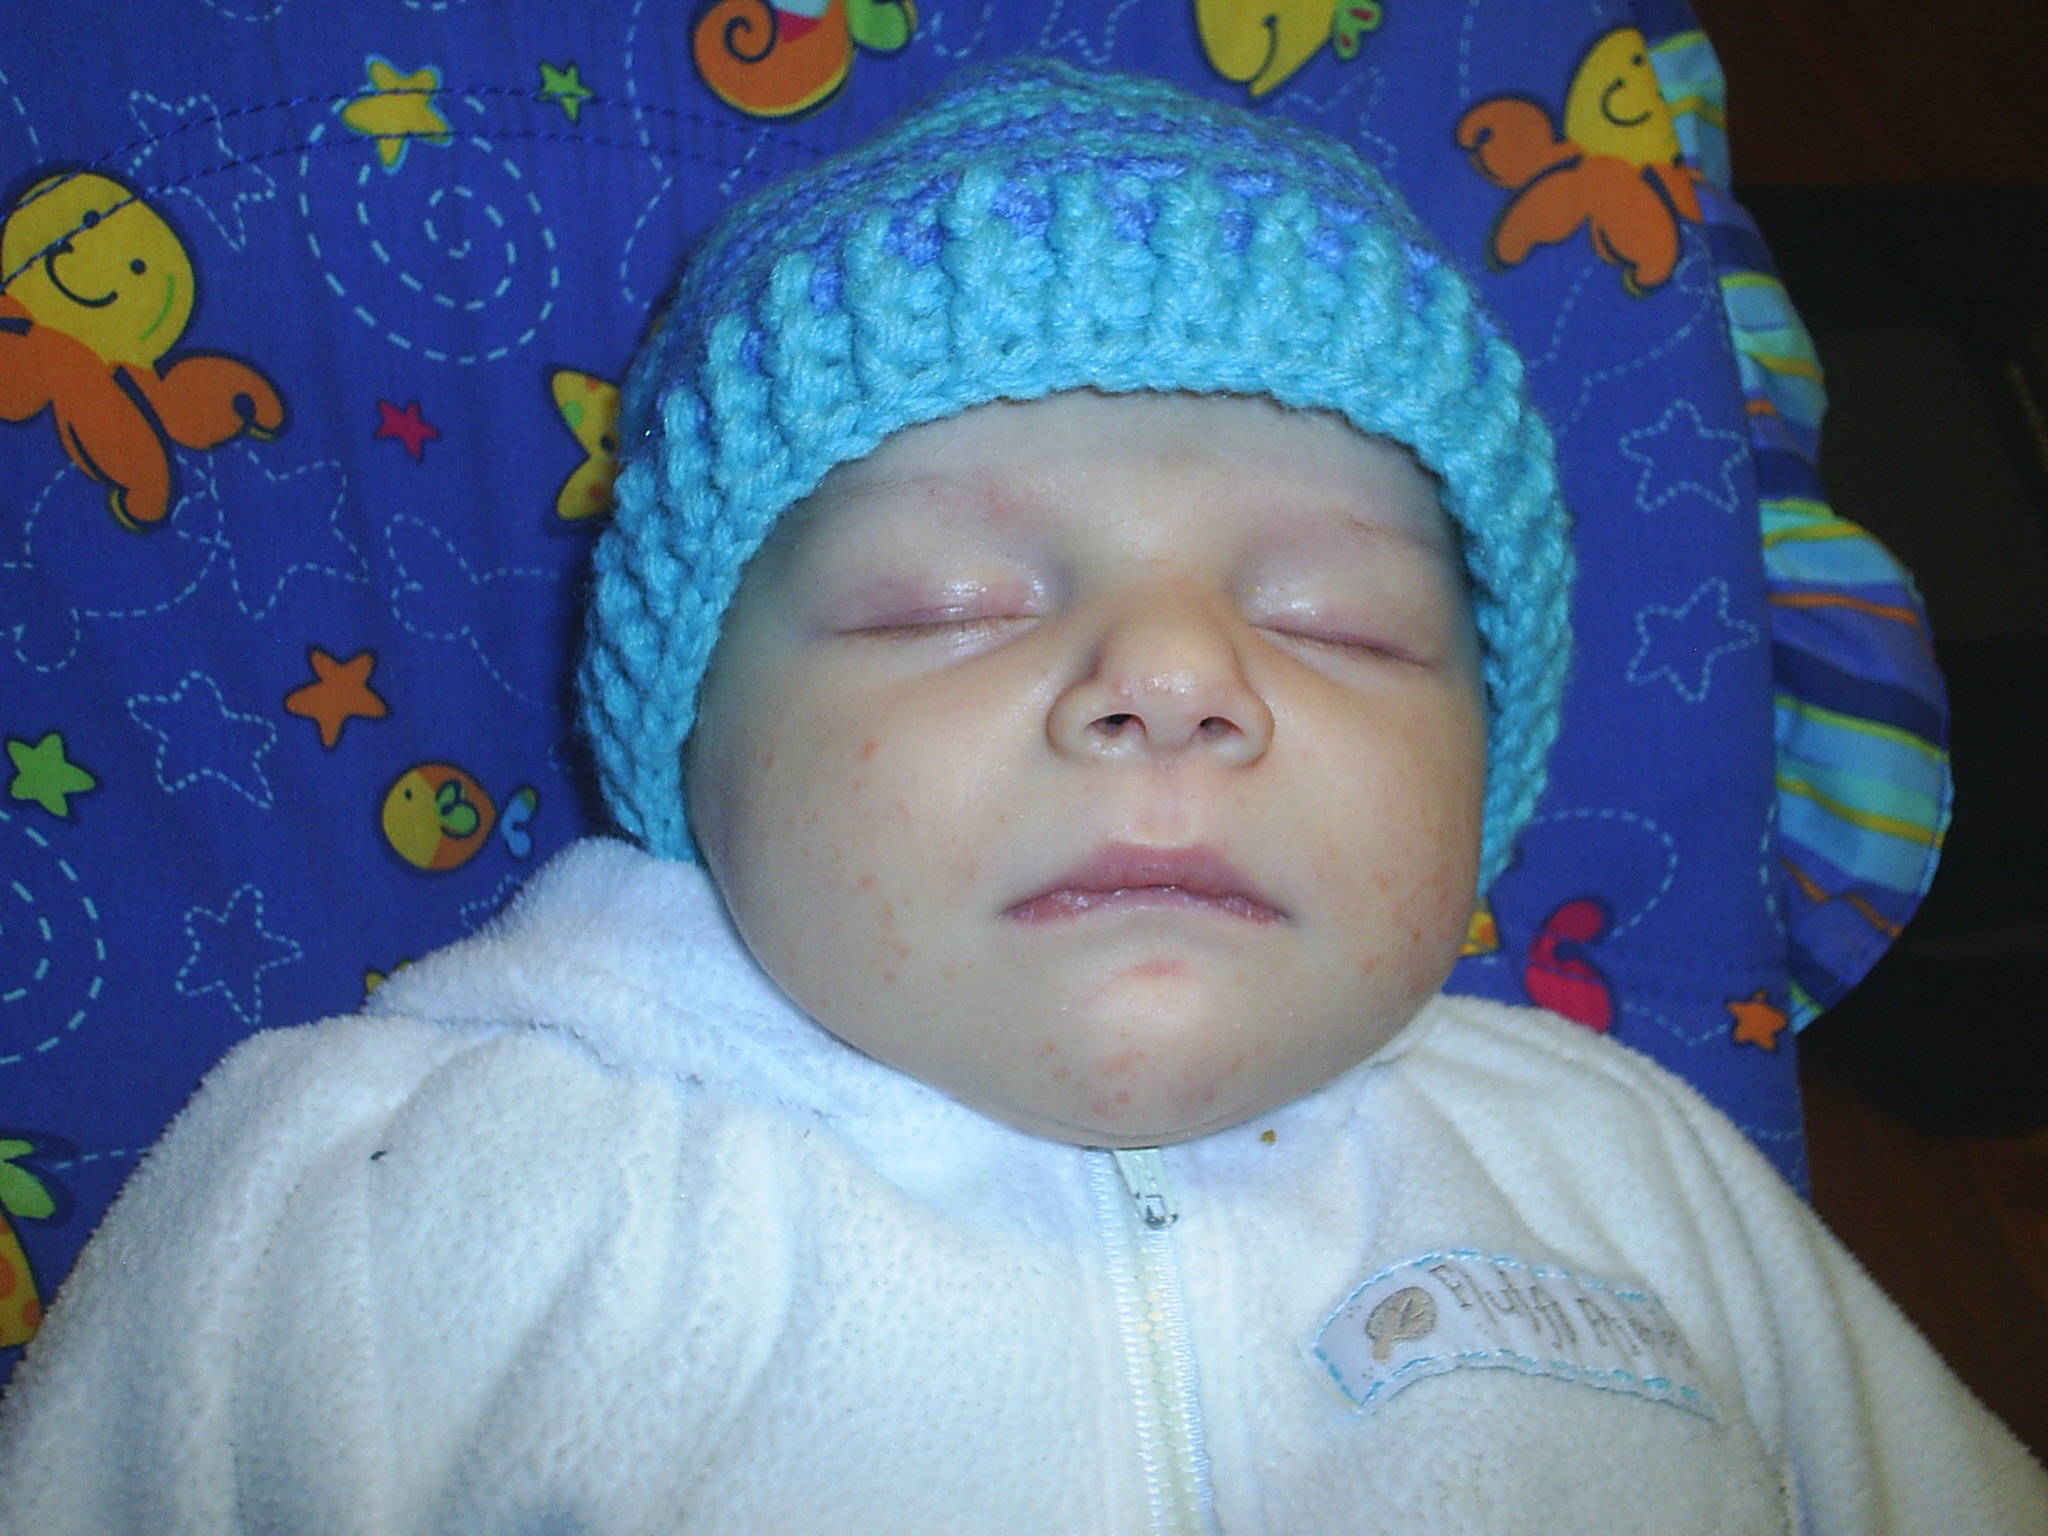 Free Crochet Patterns For Baby Toddler Hats : Toddler Crochet Hat Pattern - Modern Homemakers